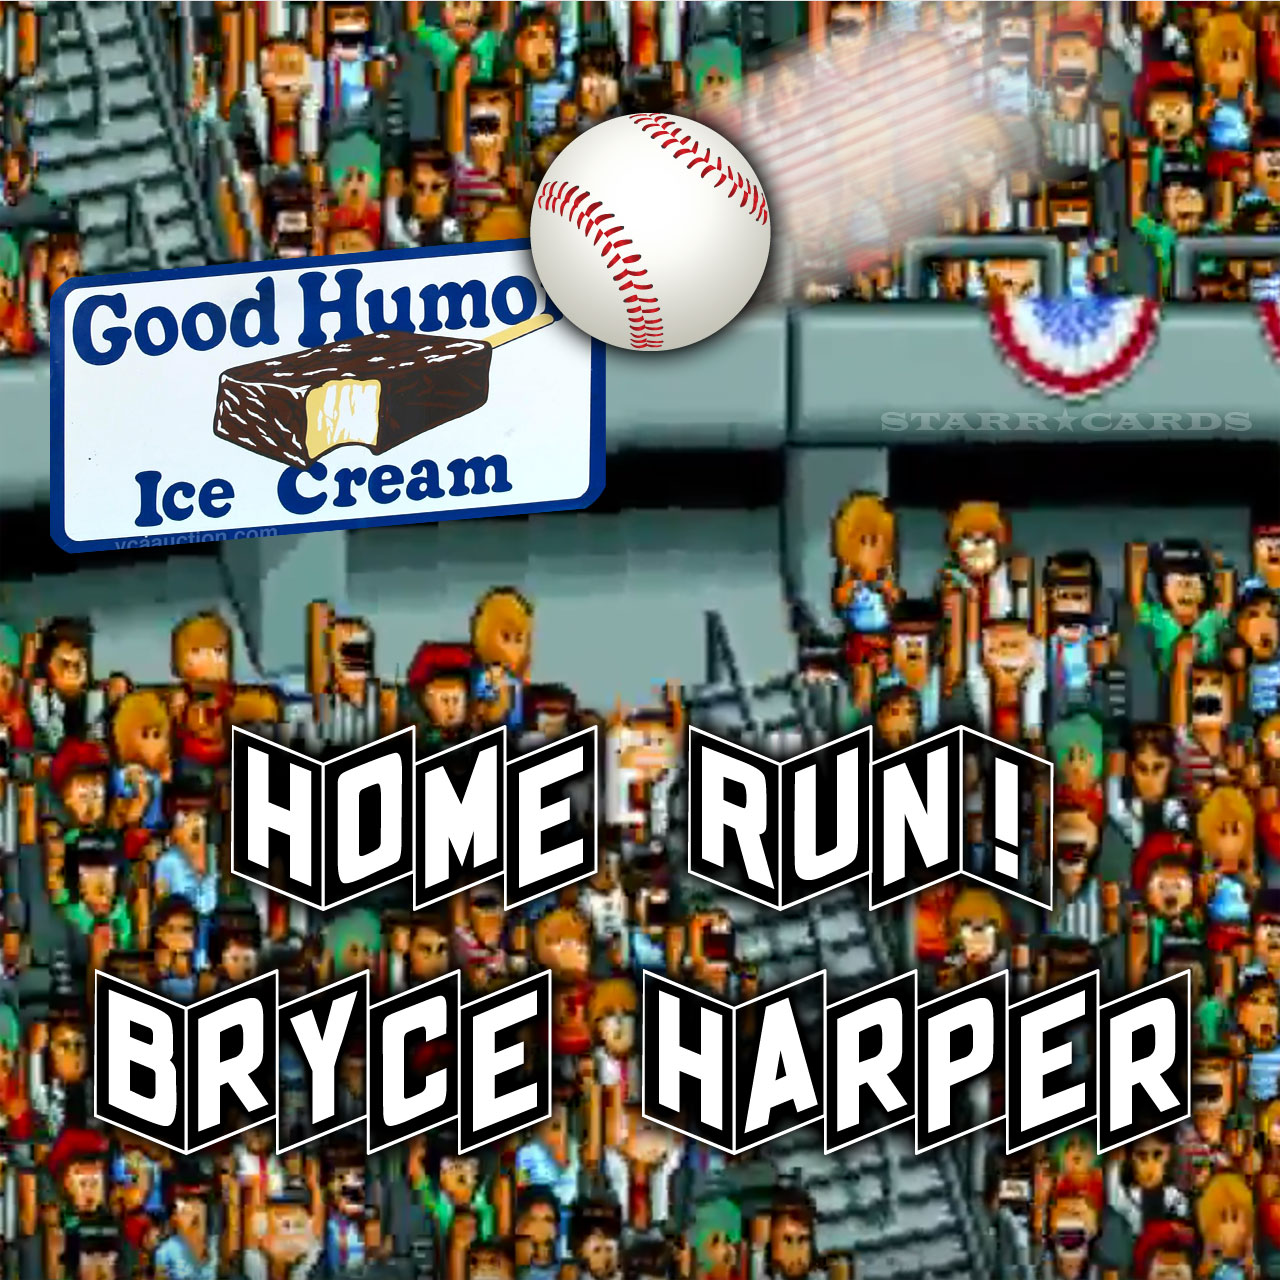 Grand Slam! Bryce Harper hits 100th HR off of Good Humor sign